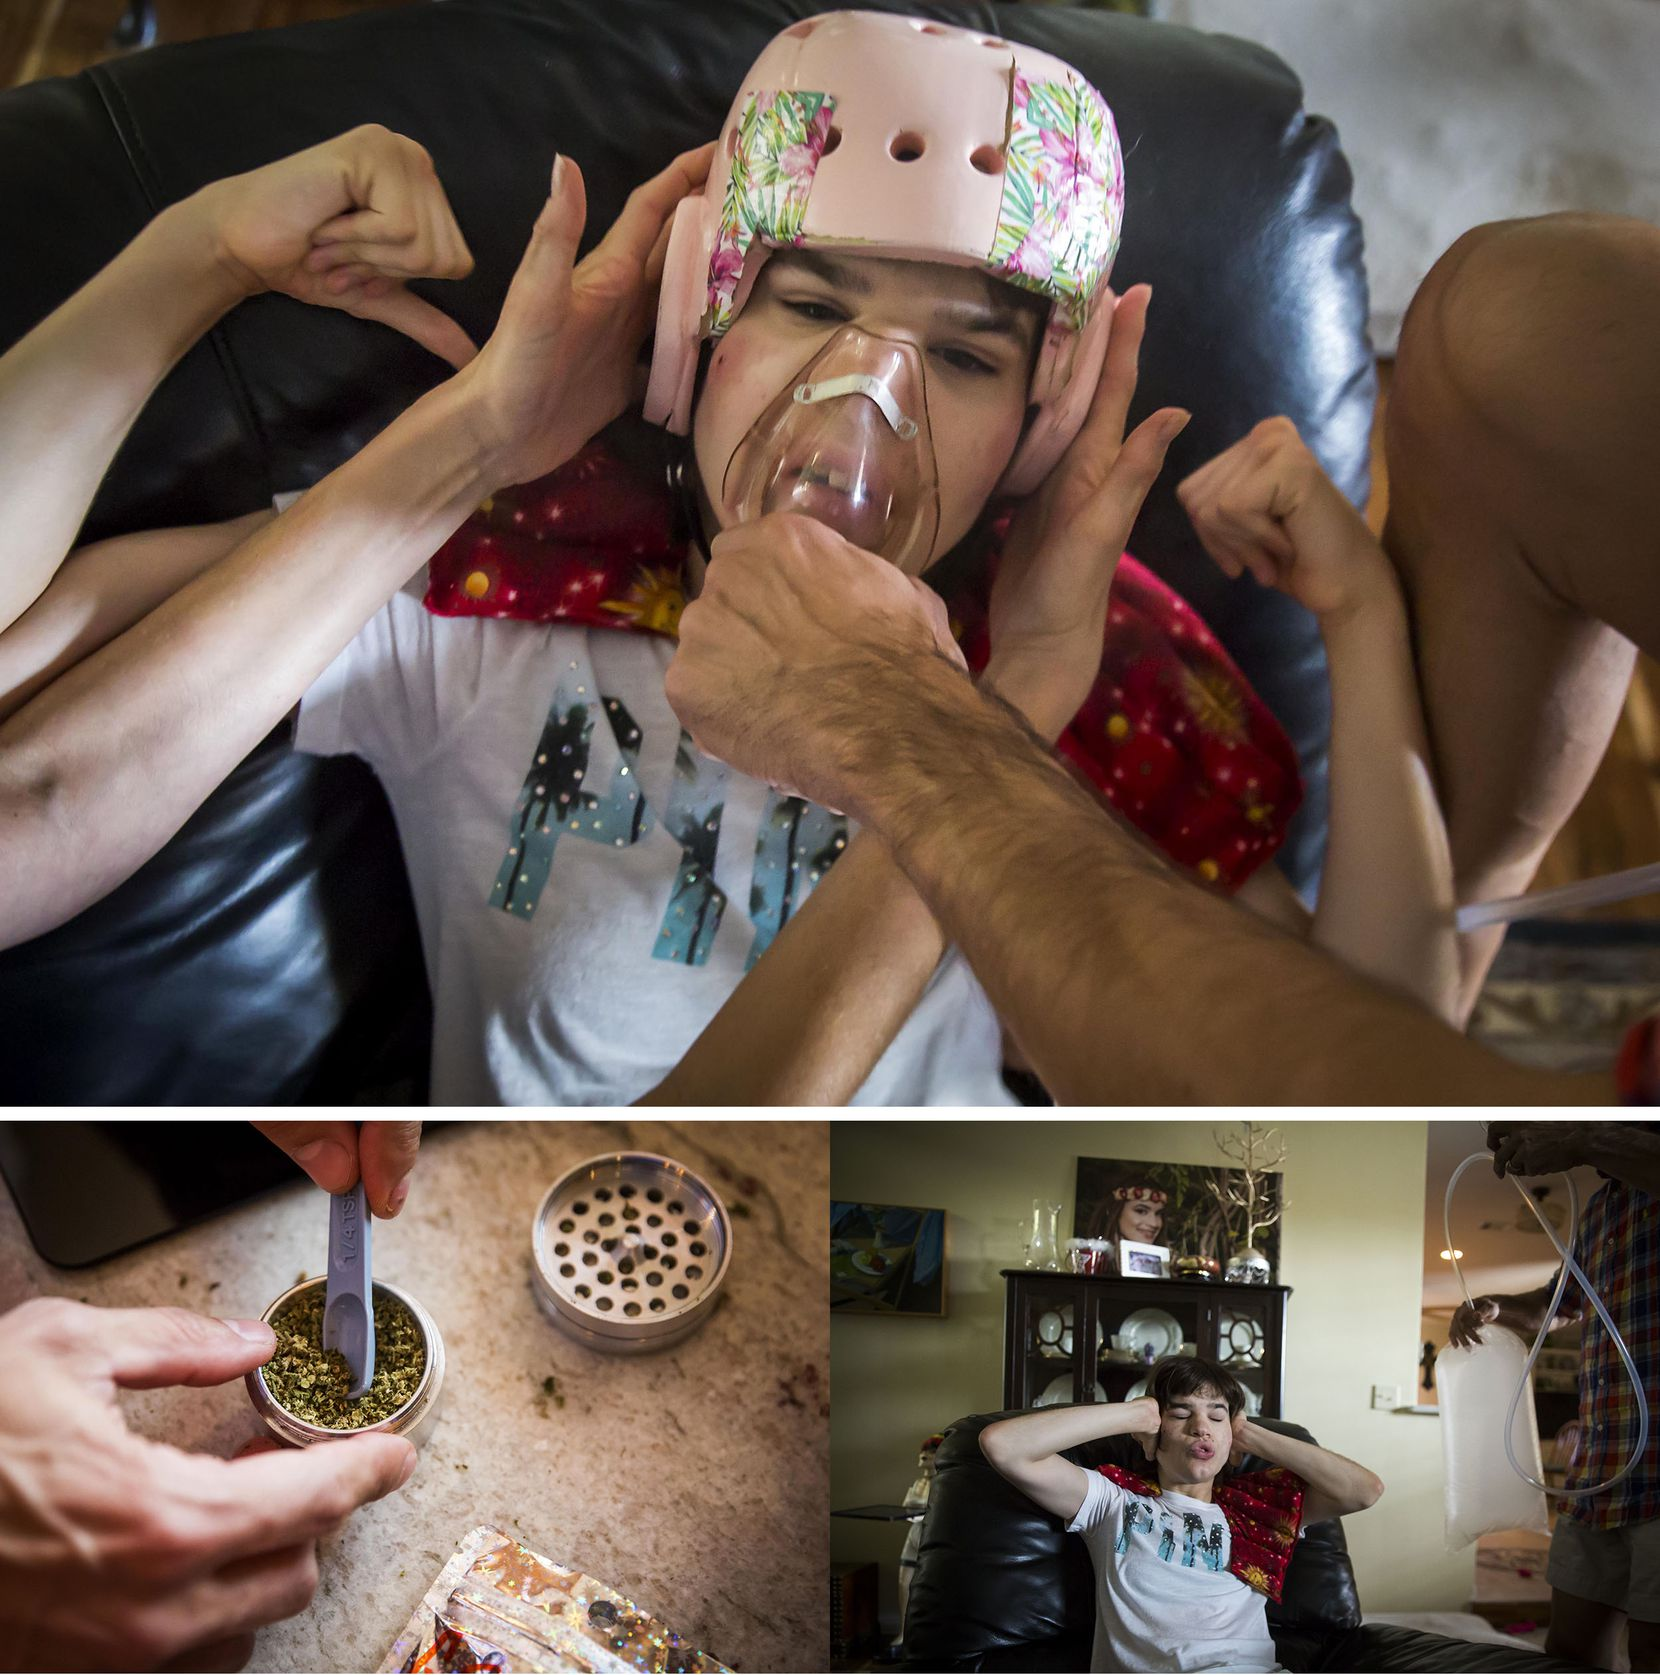 Kara Zartler punches herself in the head with both fists as her father Mark places a medical mask over her nose and mouth and fills it with marijuana vapor in an effort to control her fit of self-abuse on March 18 in Richardson. (Smiley N. Pool/The Dallas Morning News)